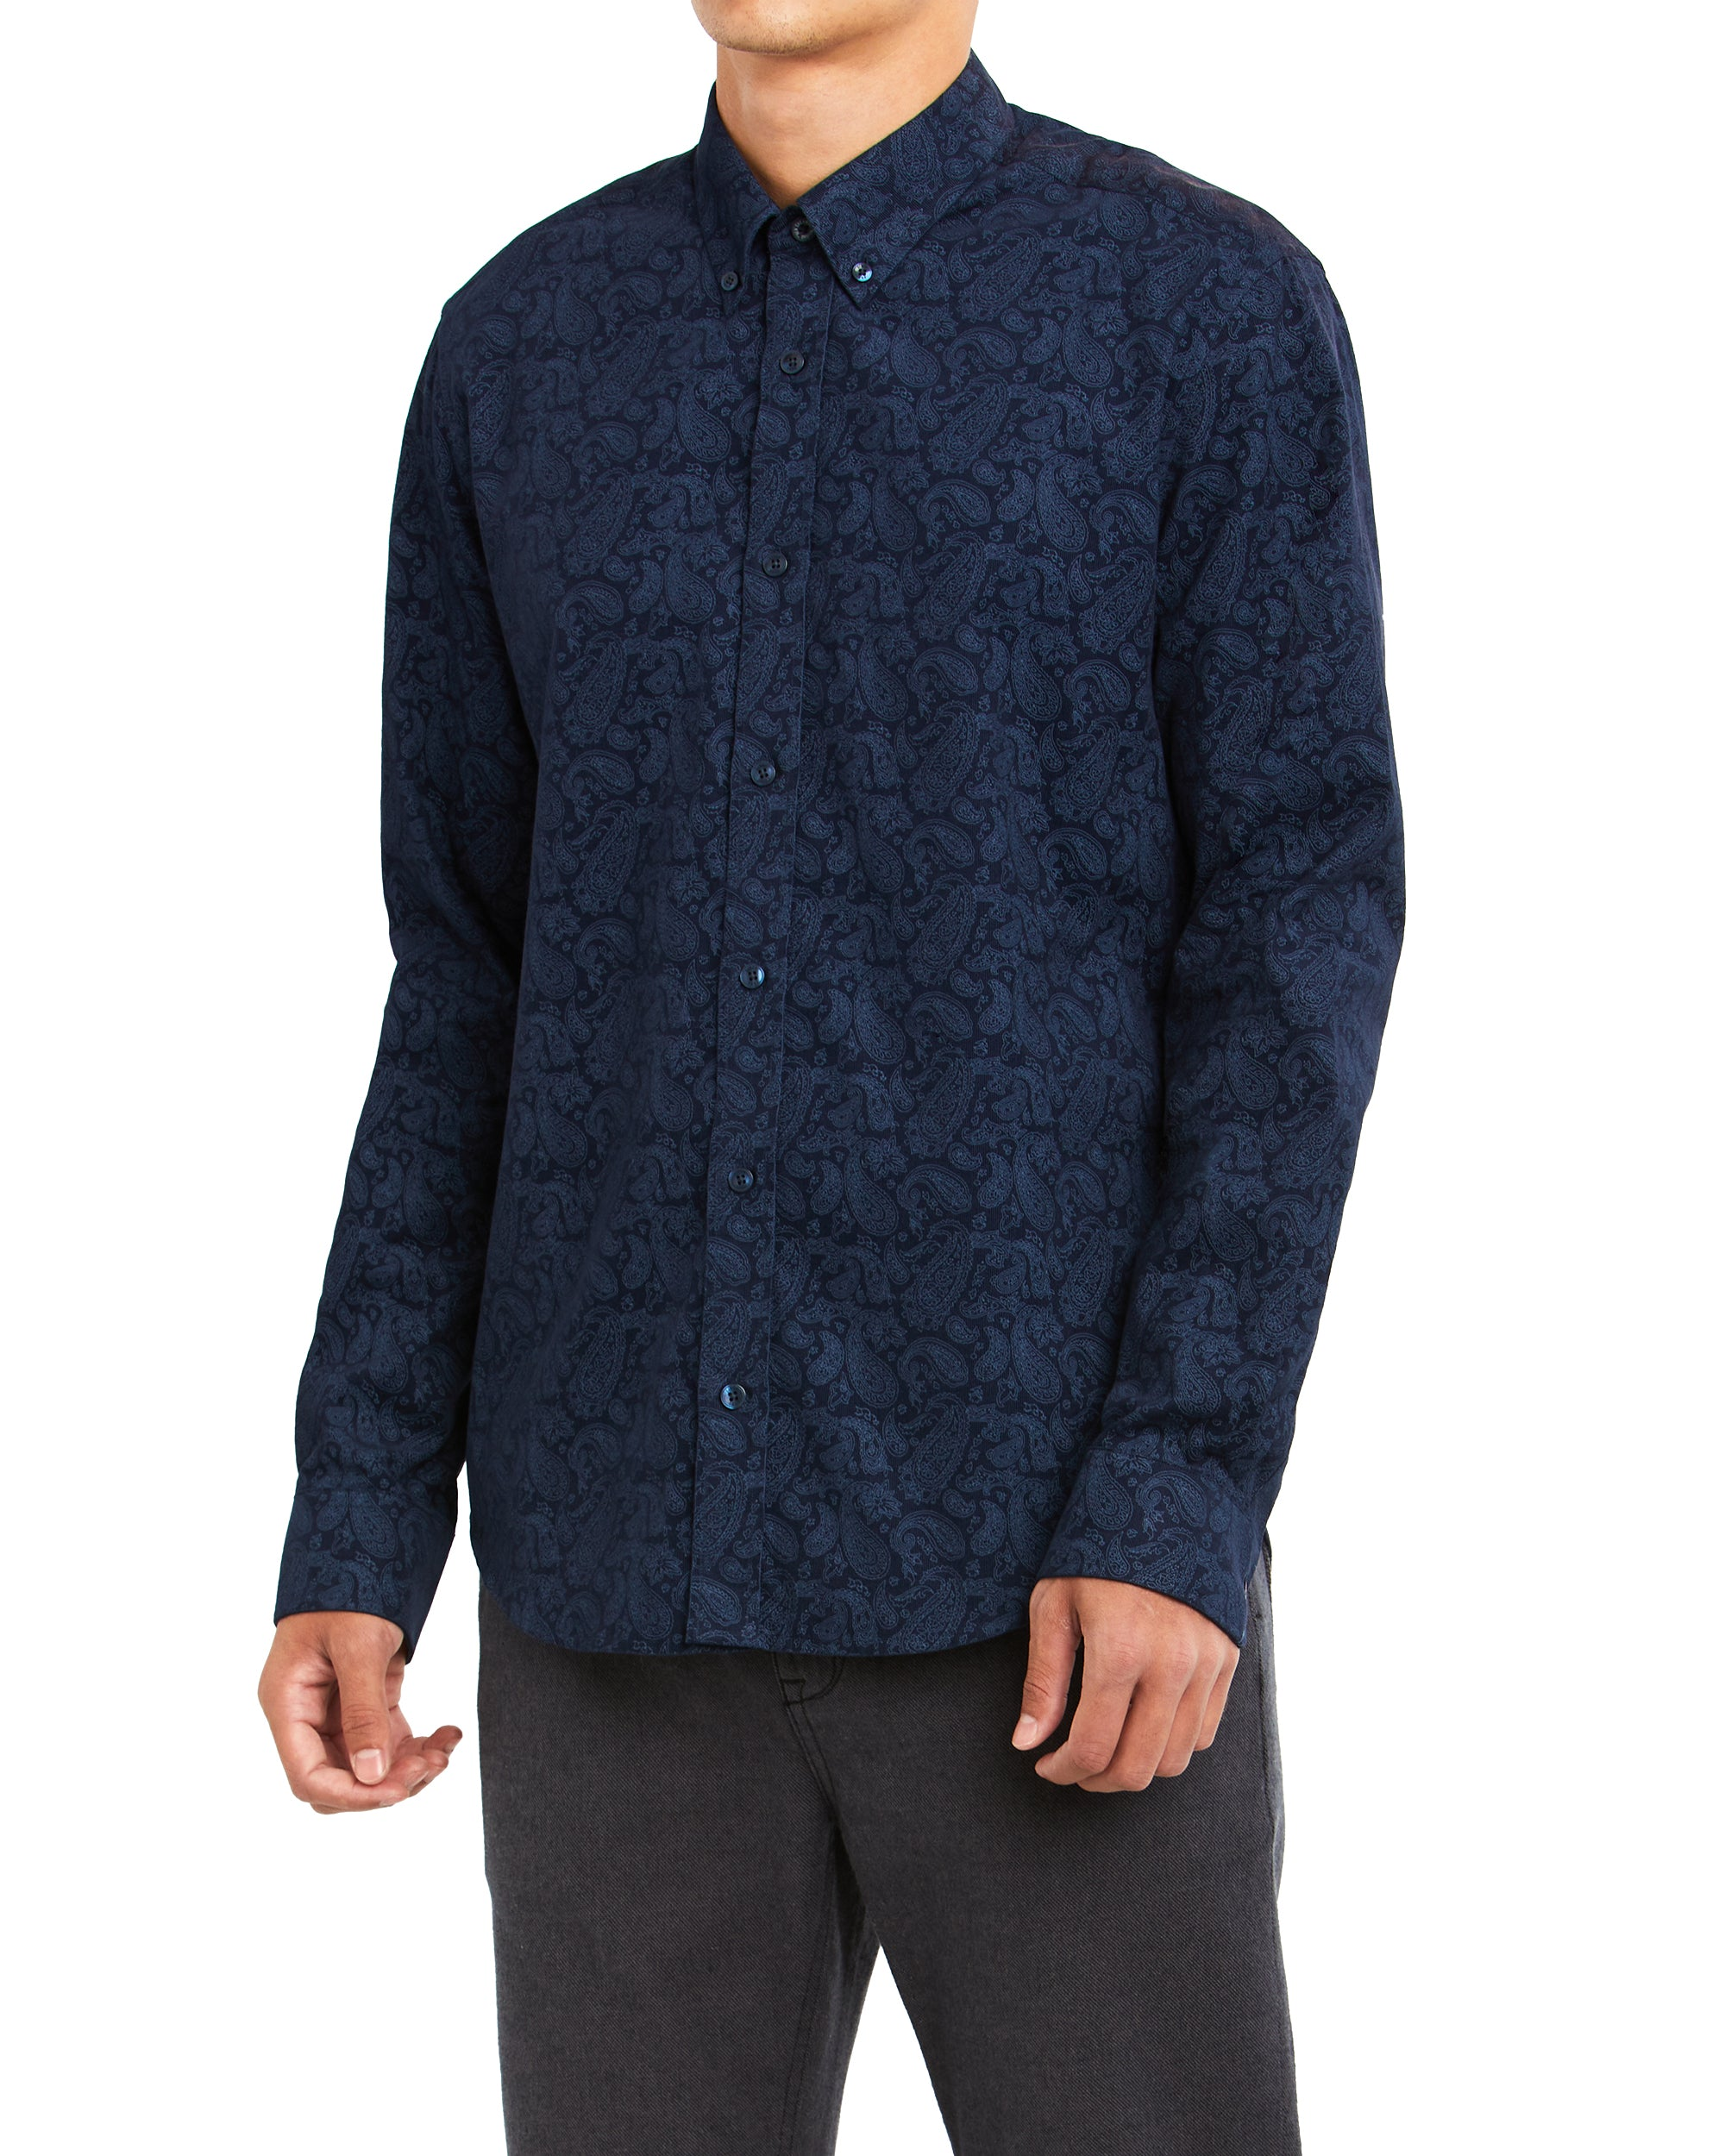 Long-Sleeve Paisley Shirt - Navy Blazer